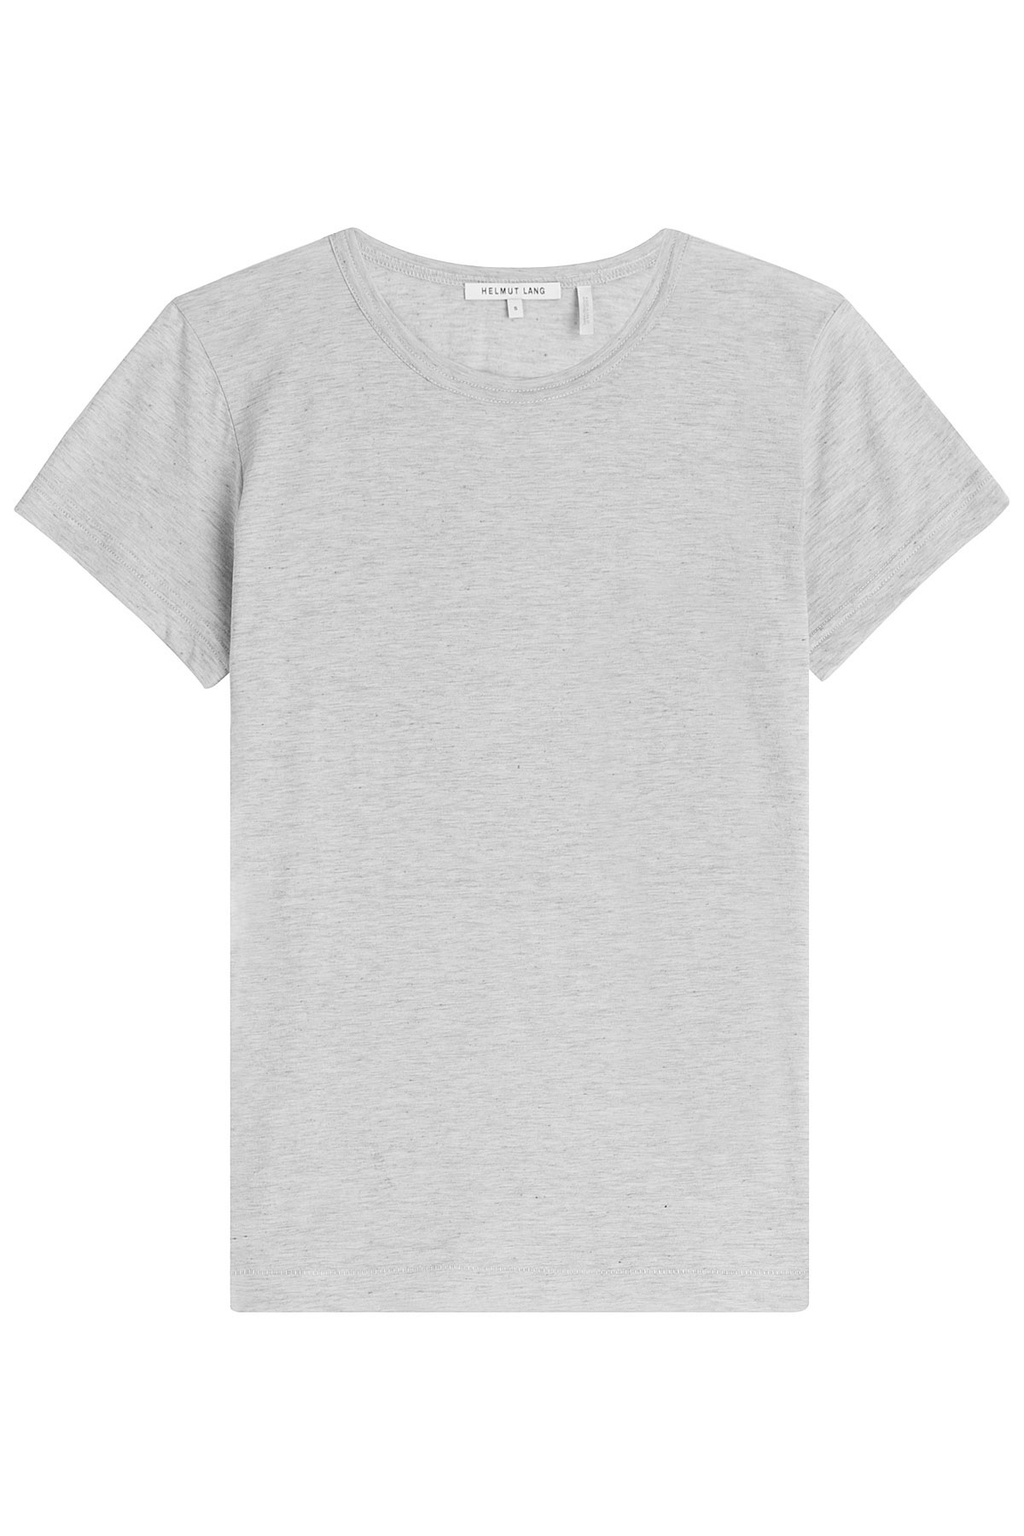 Cotton Cashmere T Shirt - neckline: round neck; pattern: plain; style: t-shirt; predominant colour: light grey; occasions: casual; length: standard; fibres: cotton - mix; fit: straight cut; sleeve length: short sleeve; sleeve style: standard; pattern type: fabric; texture group: jersey - stretchy/drapey; season: s/s 2016; wardrobe: basic